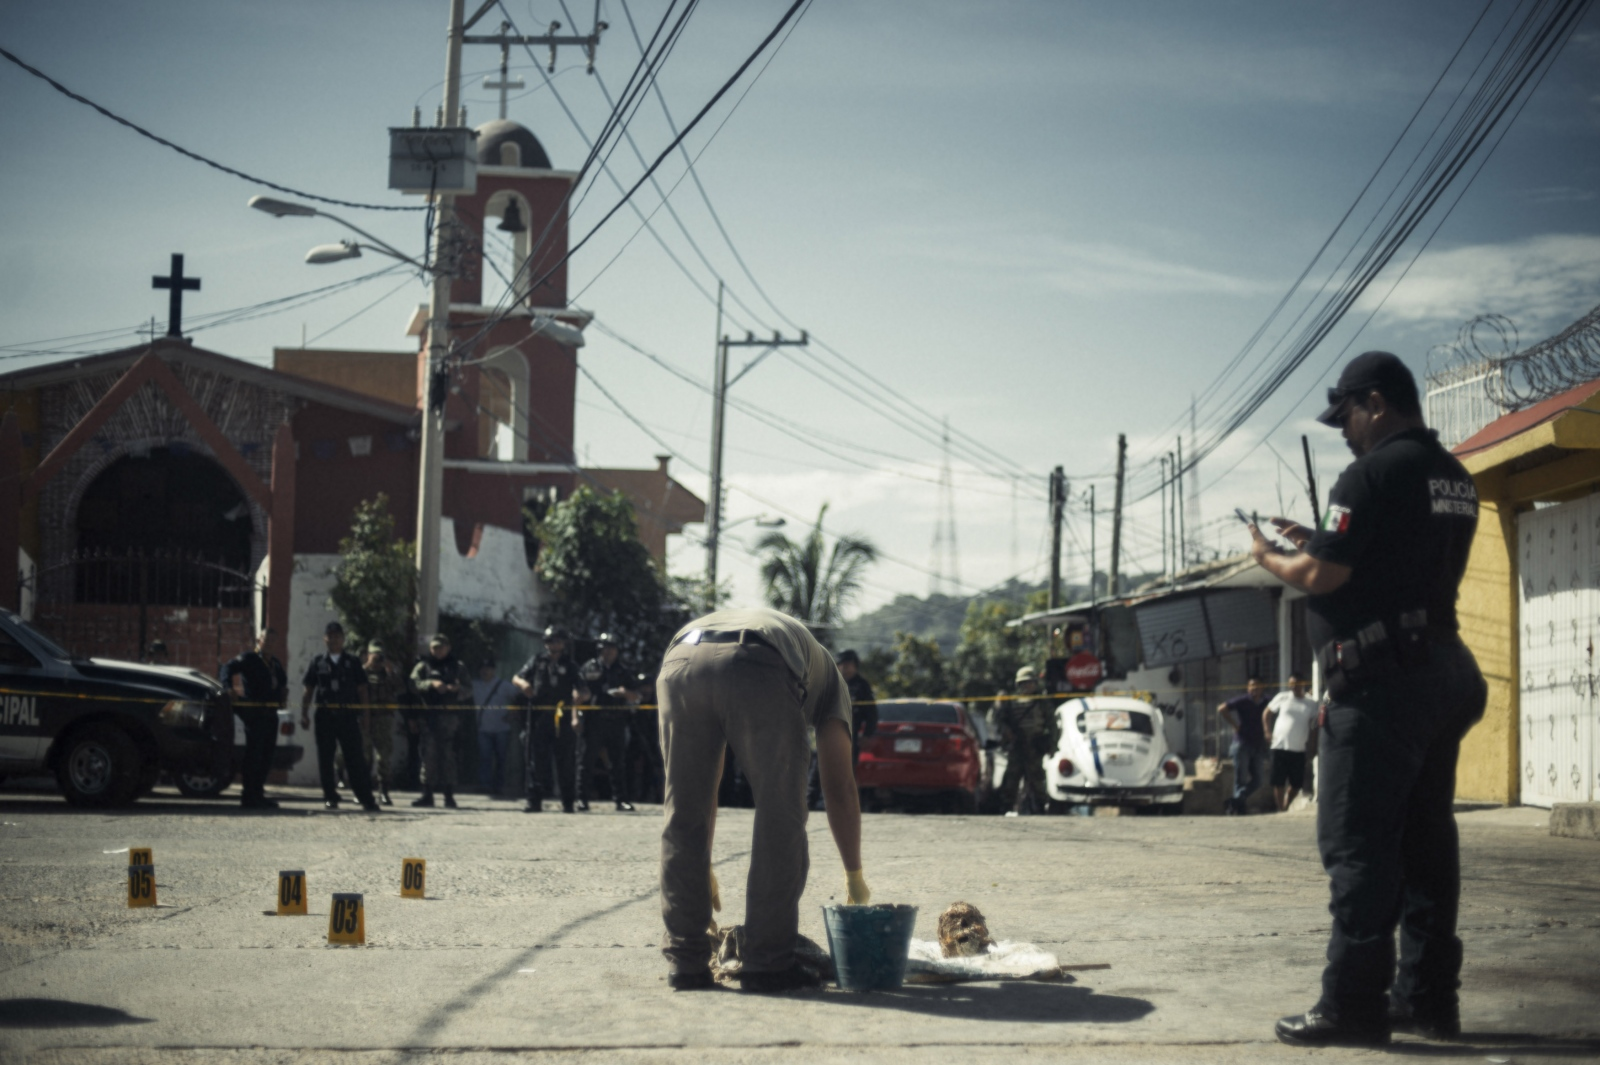 Mexican soldiers and police guard a severed head which was left as a message between cartel members in the colonia primero de mayo neighborhood, which is one of the many neighborhoods which has found itself in the center of Mexico's long drug war.  The severed head had been dissolved in acid not as a means to hide, evidence but to layer an addiional level of depravity to the message being sent.